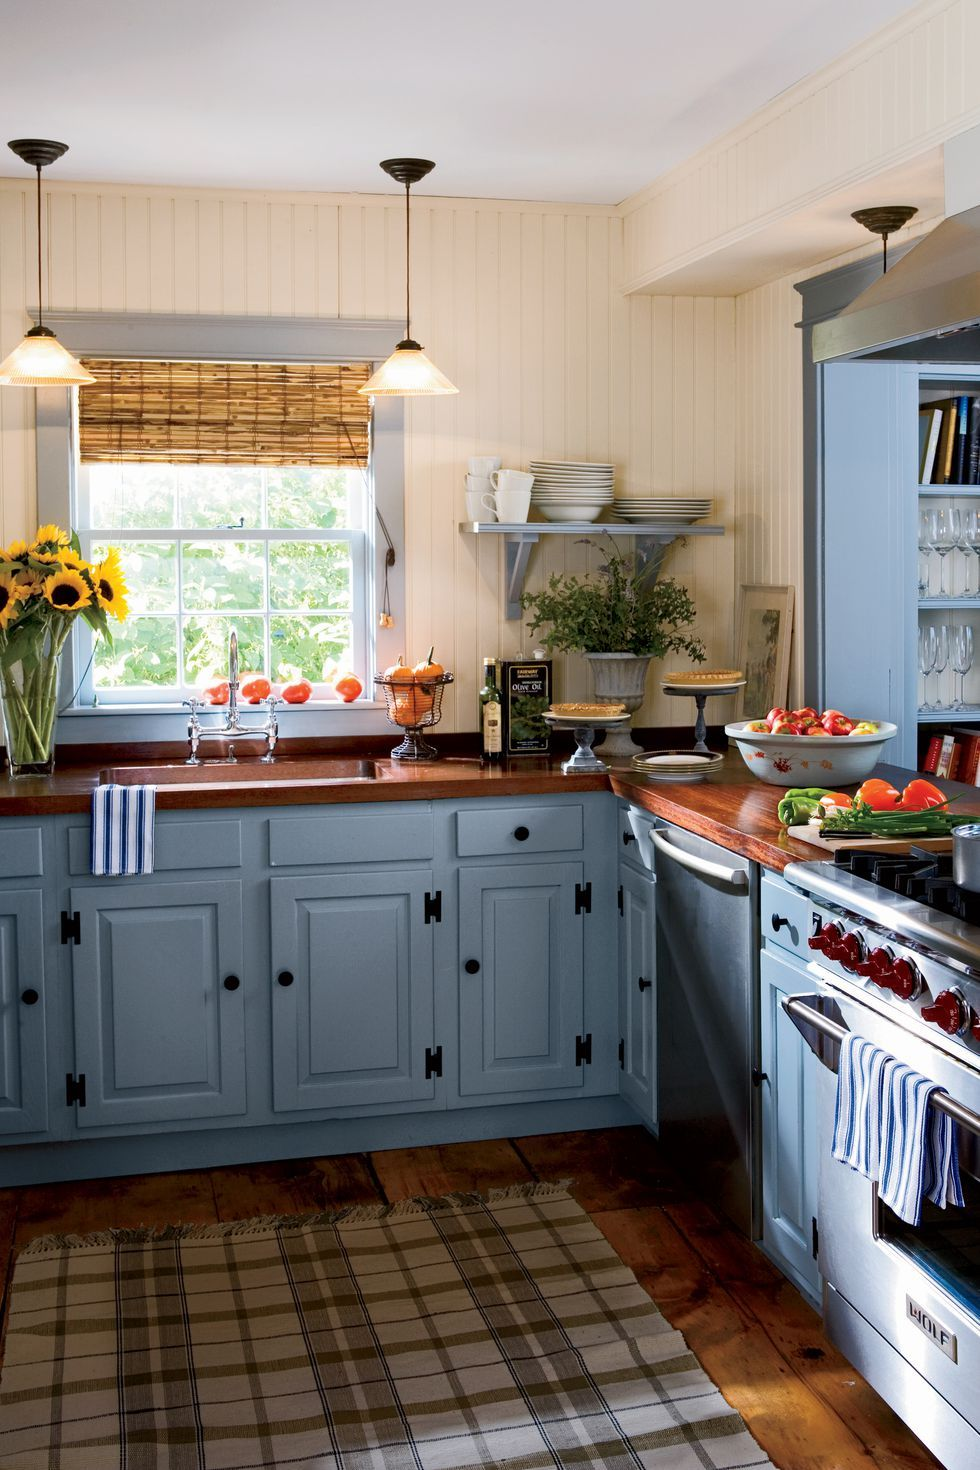 26 Paint Colors That Will Transform Your Kitchen Country Kitchen Designs Country Kitchen Colors Country Kitchen